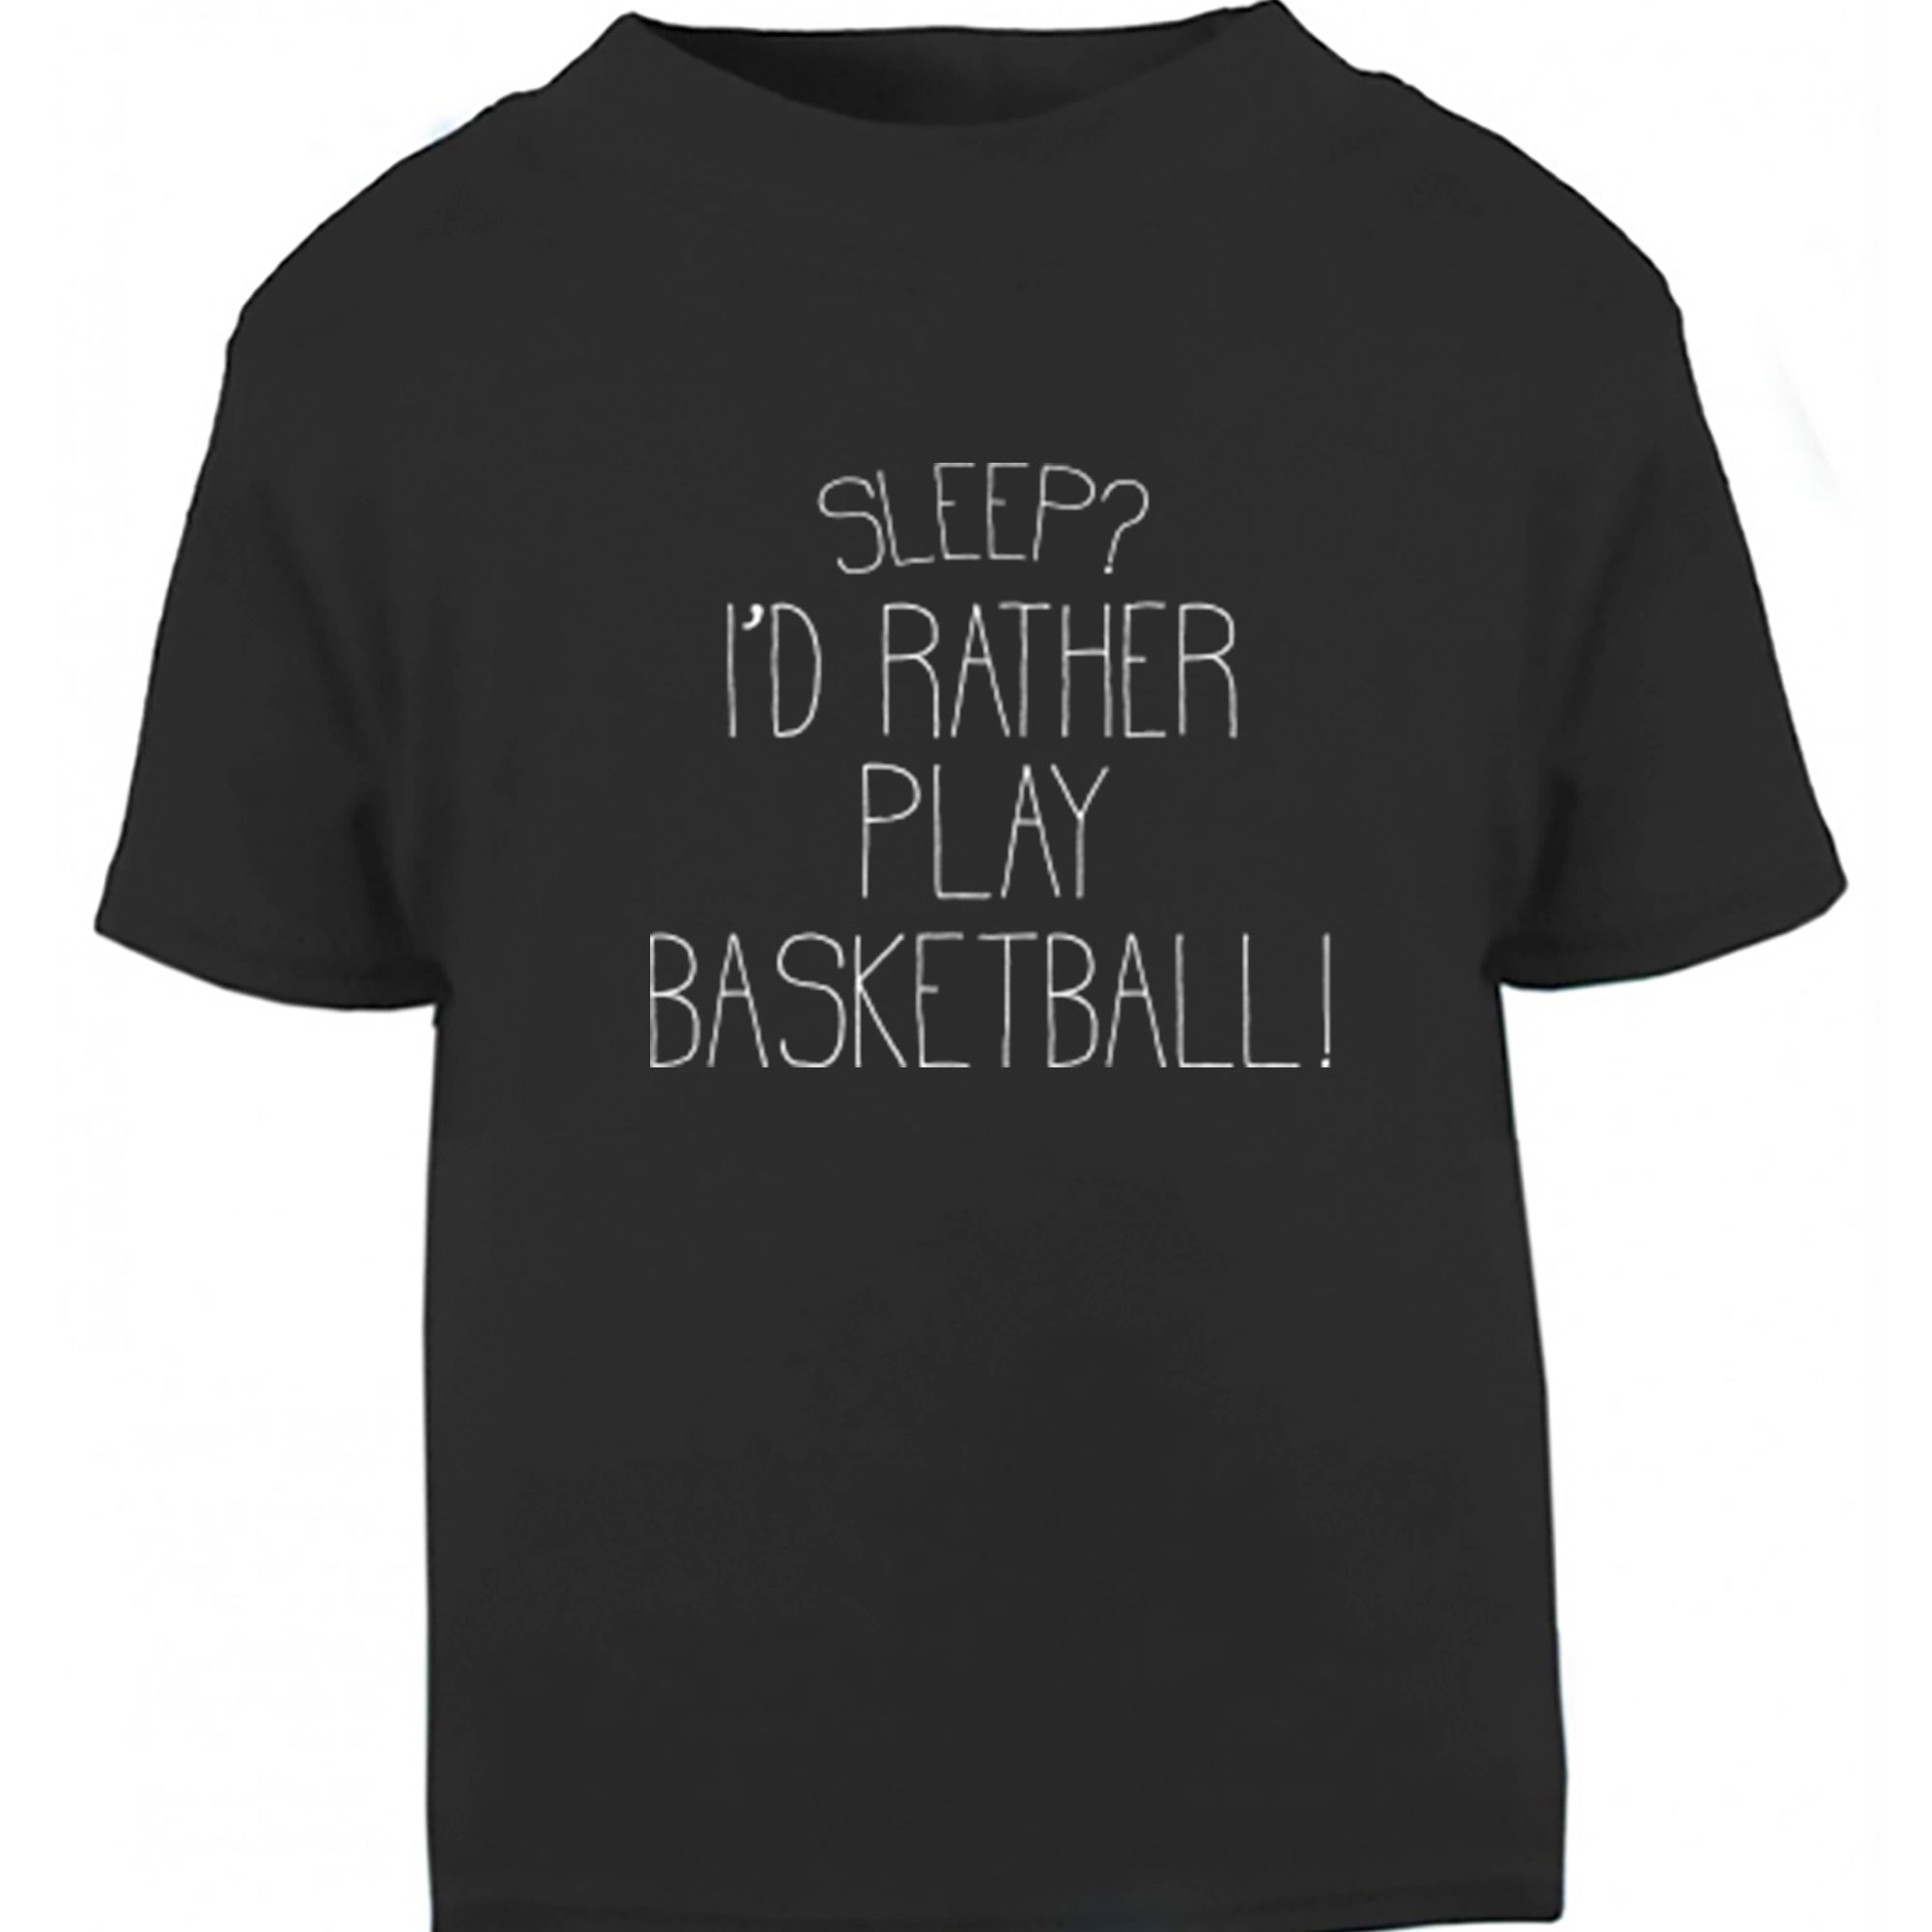 Sleep? I'd Rather Play Basketball! Childrens Ages 3/4-12/14 Unisex Fit T-Shirt S0470 - Illustrated Identity Ltd.